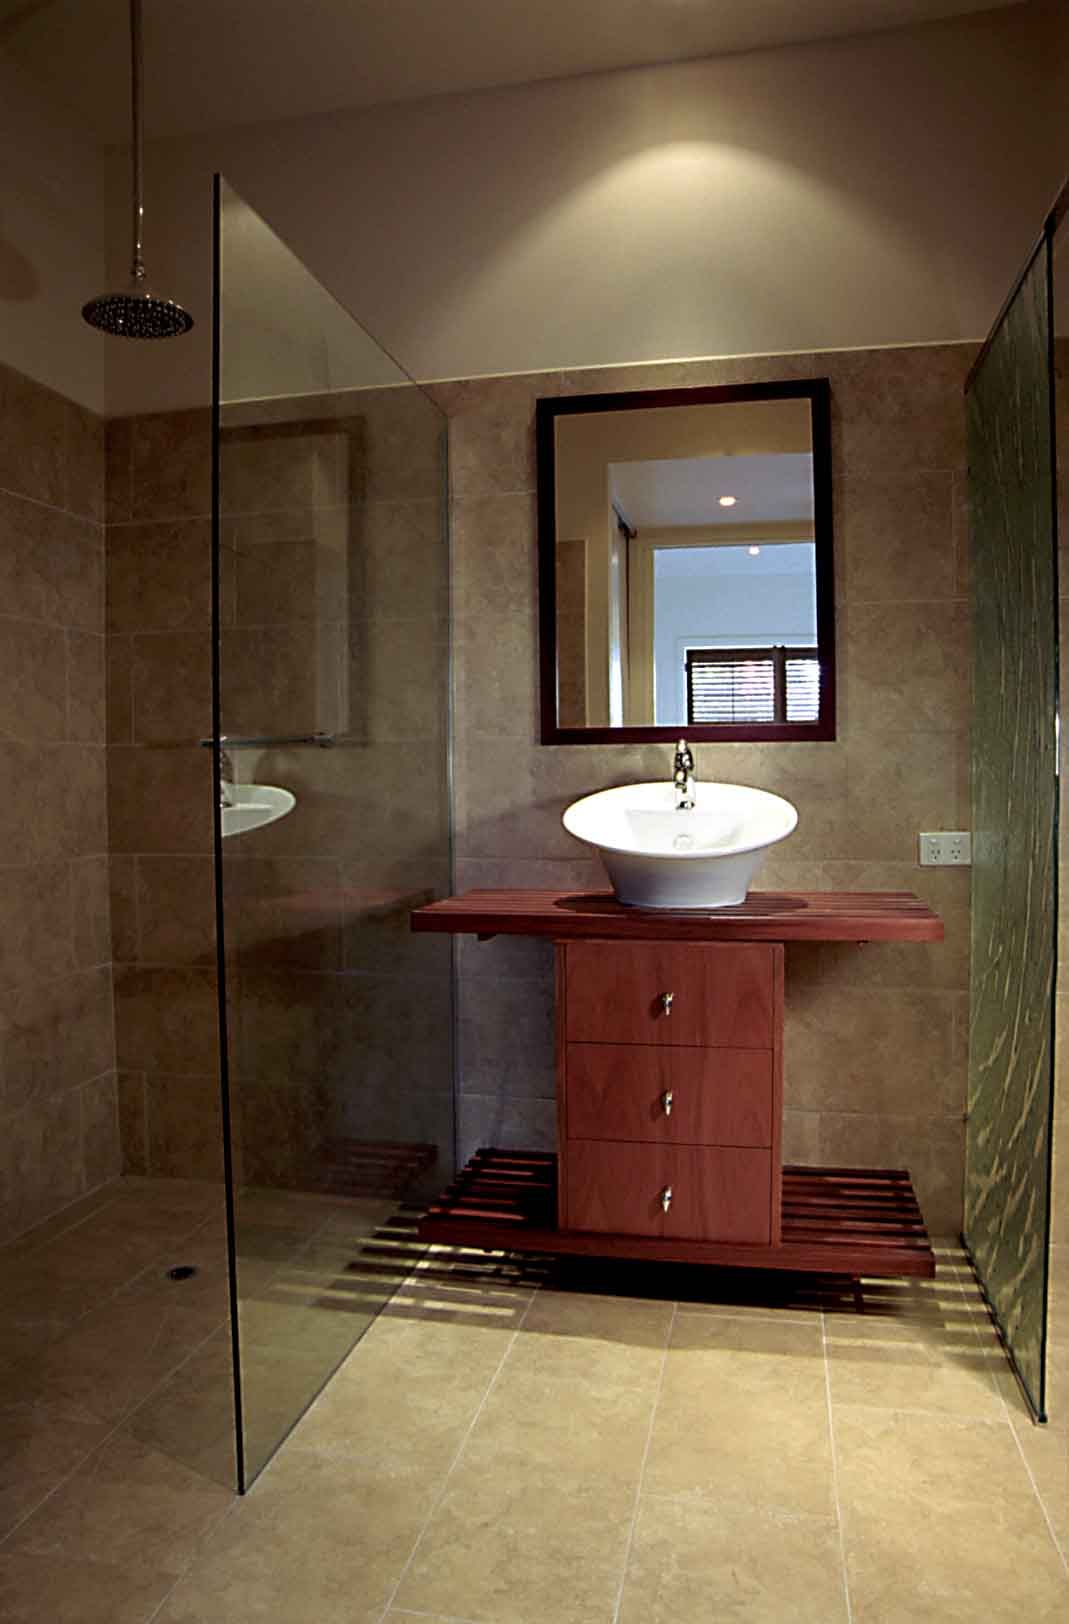 Wet room design for small bathrooms small ensuite for Bathroom design small